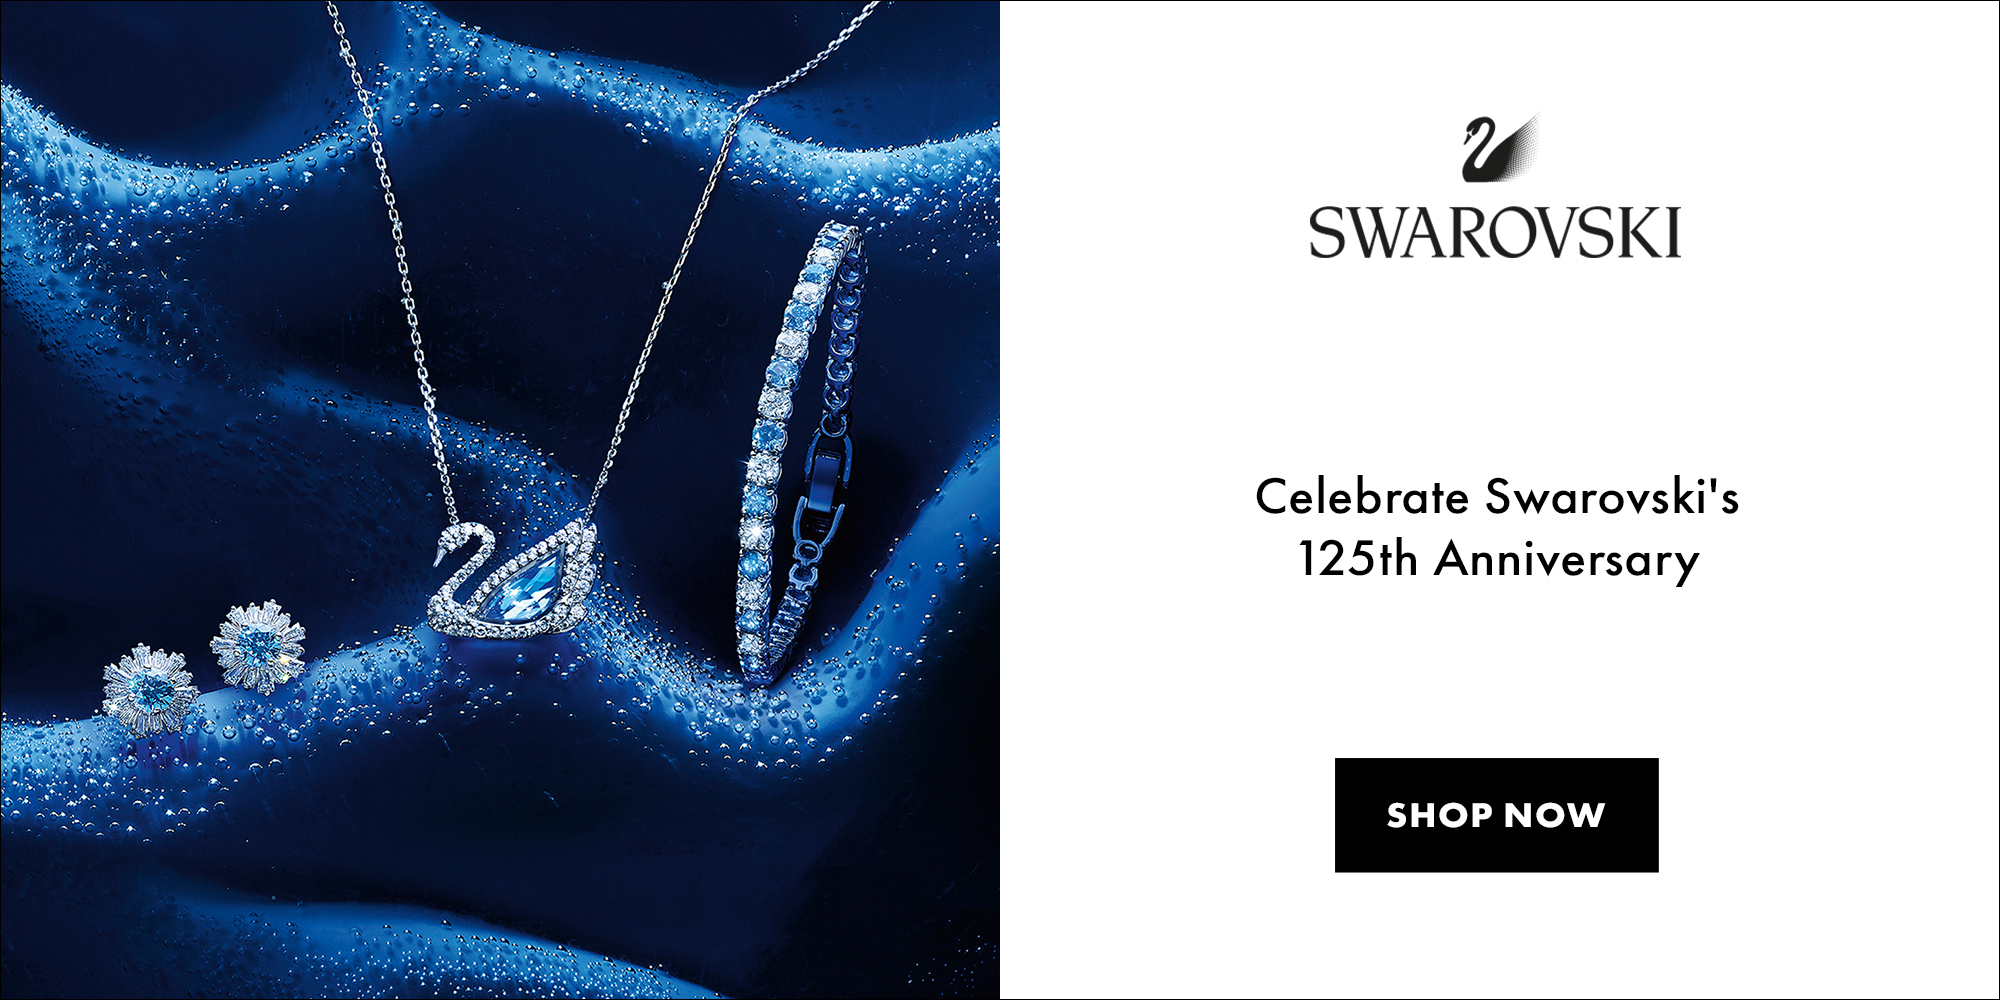 Swarovski Online, Drakes Jewellers, Plymouth, Jewellers Plymouth, Swarovski Jewellery Plymouth, Swarovski Authorised Retailer